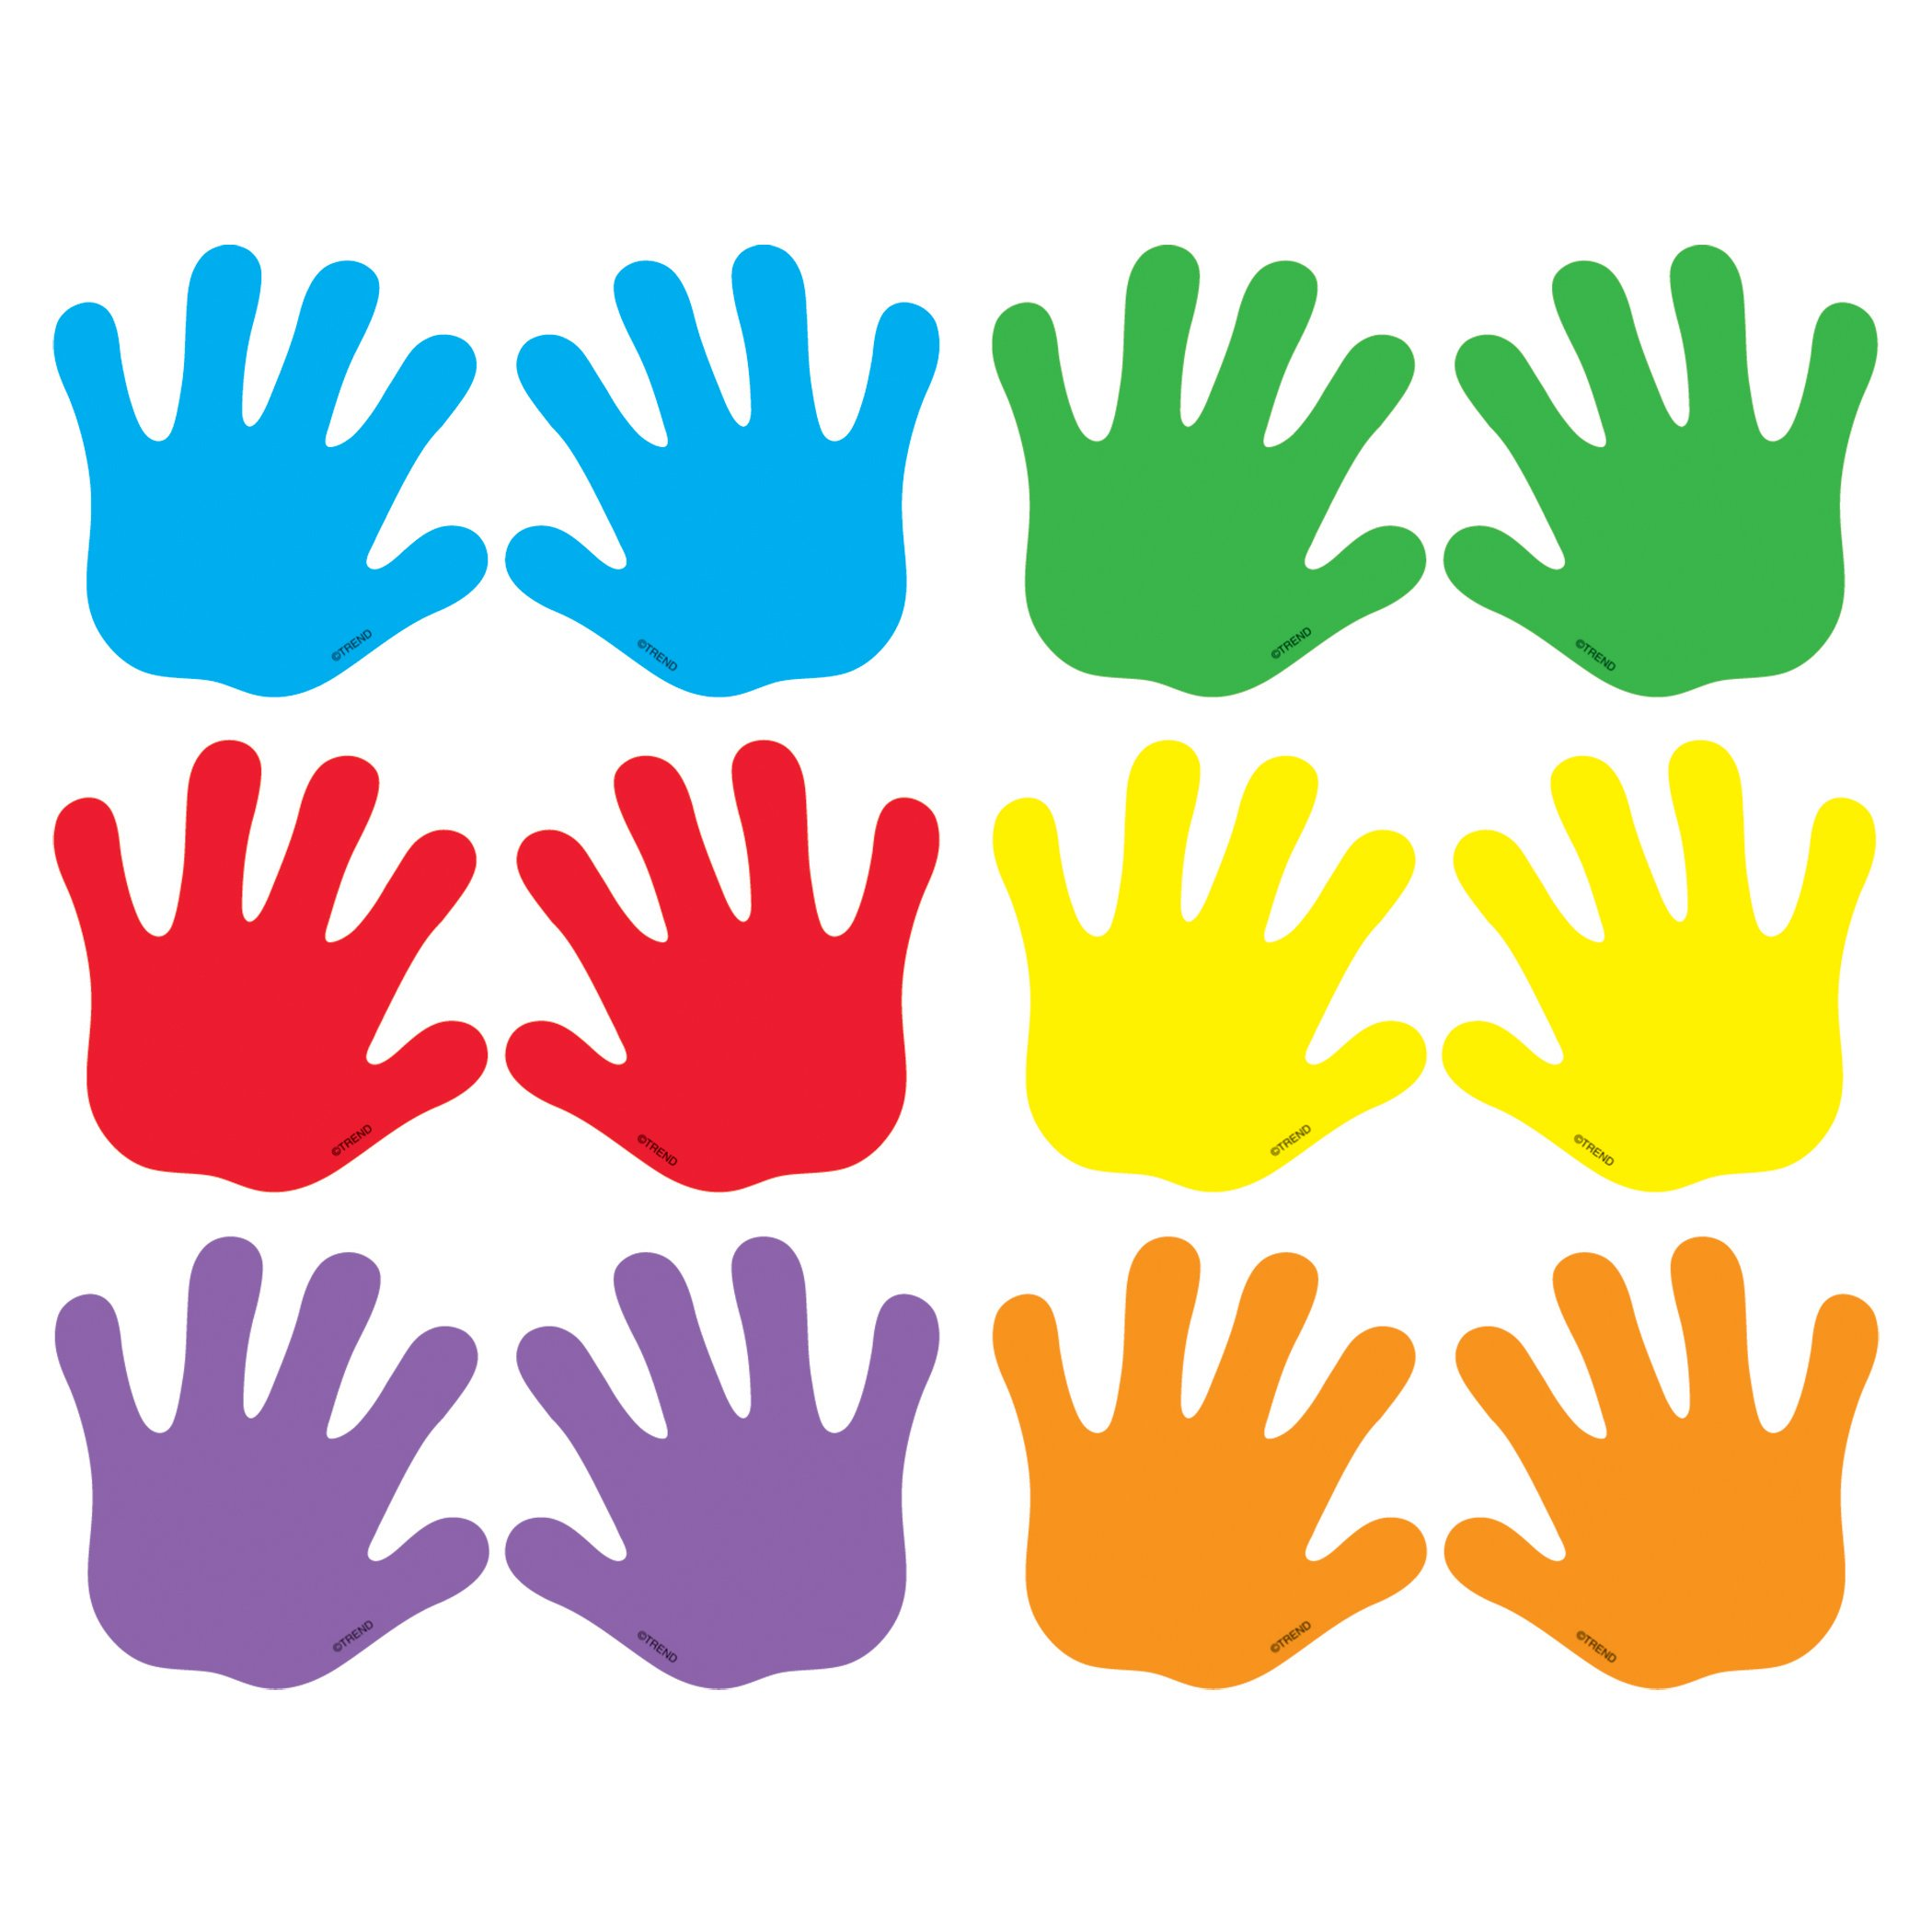 TREND enterprises, Inc. T-10831BN Handprints Mini Accents Variety Pack, 36 Per Pack, 6 Packs by Trend